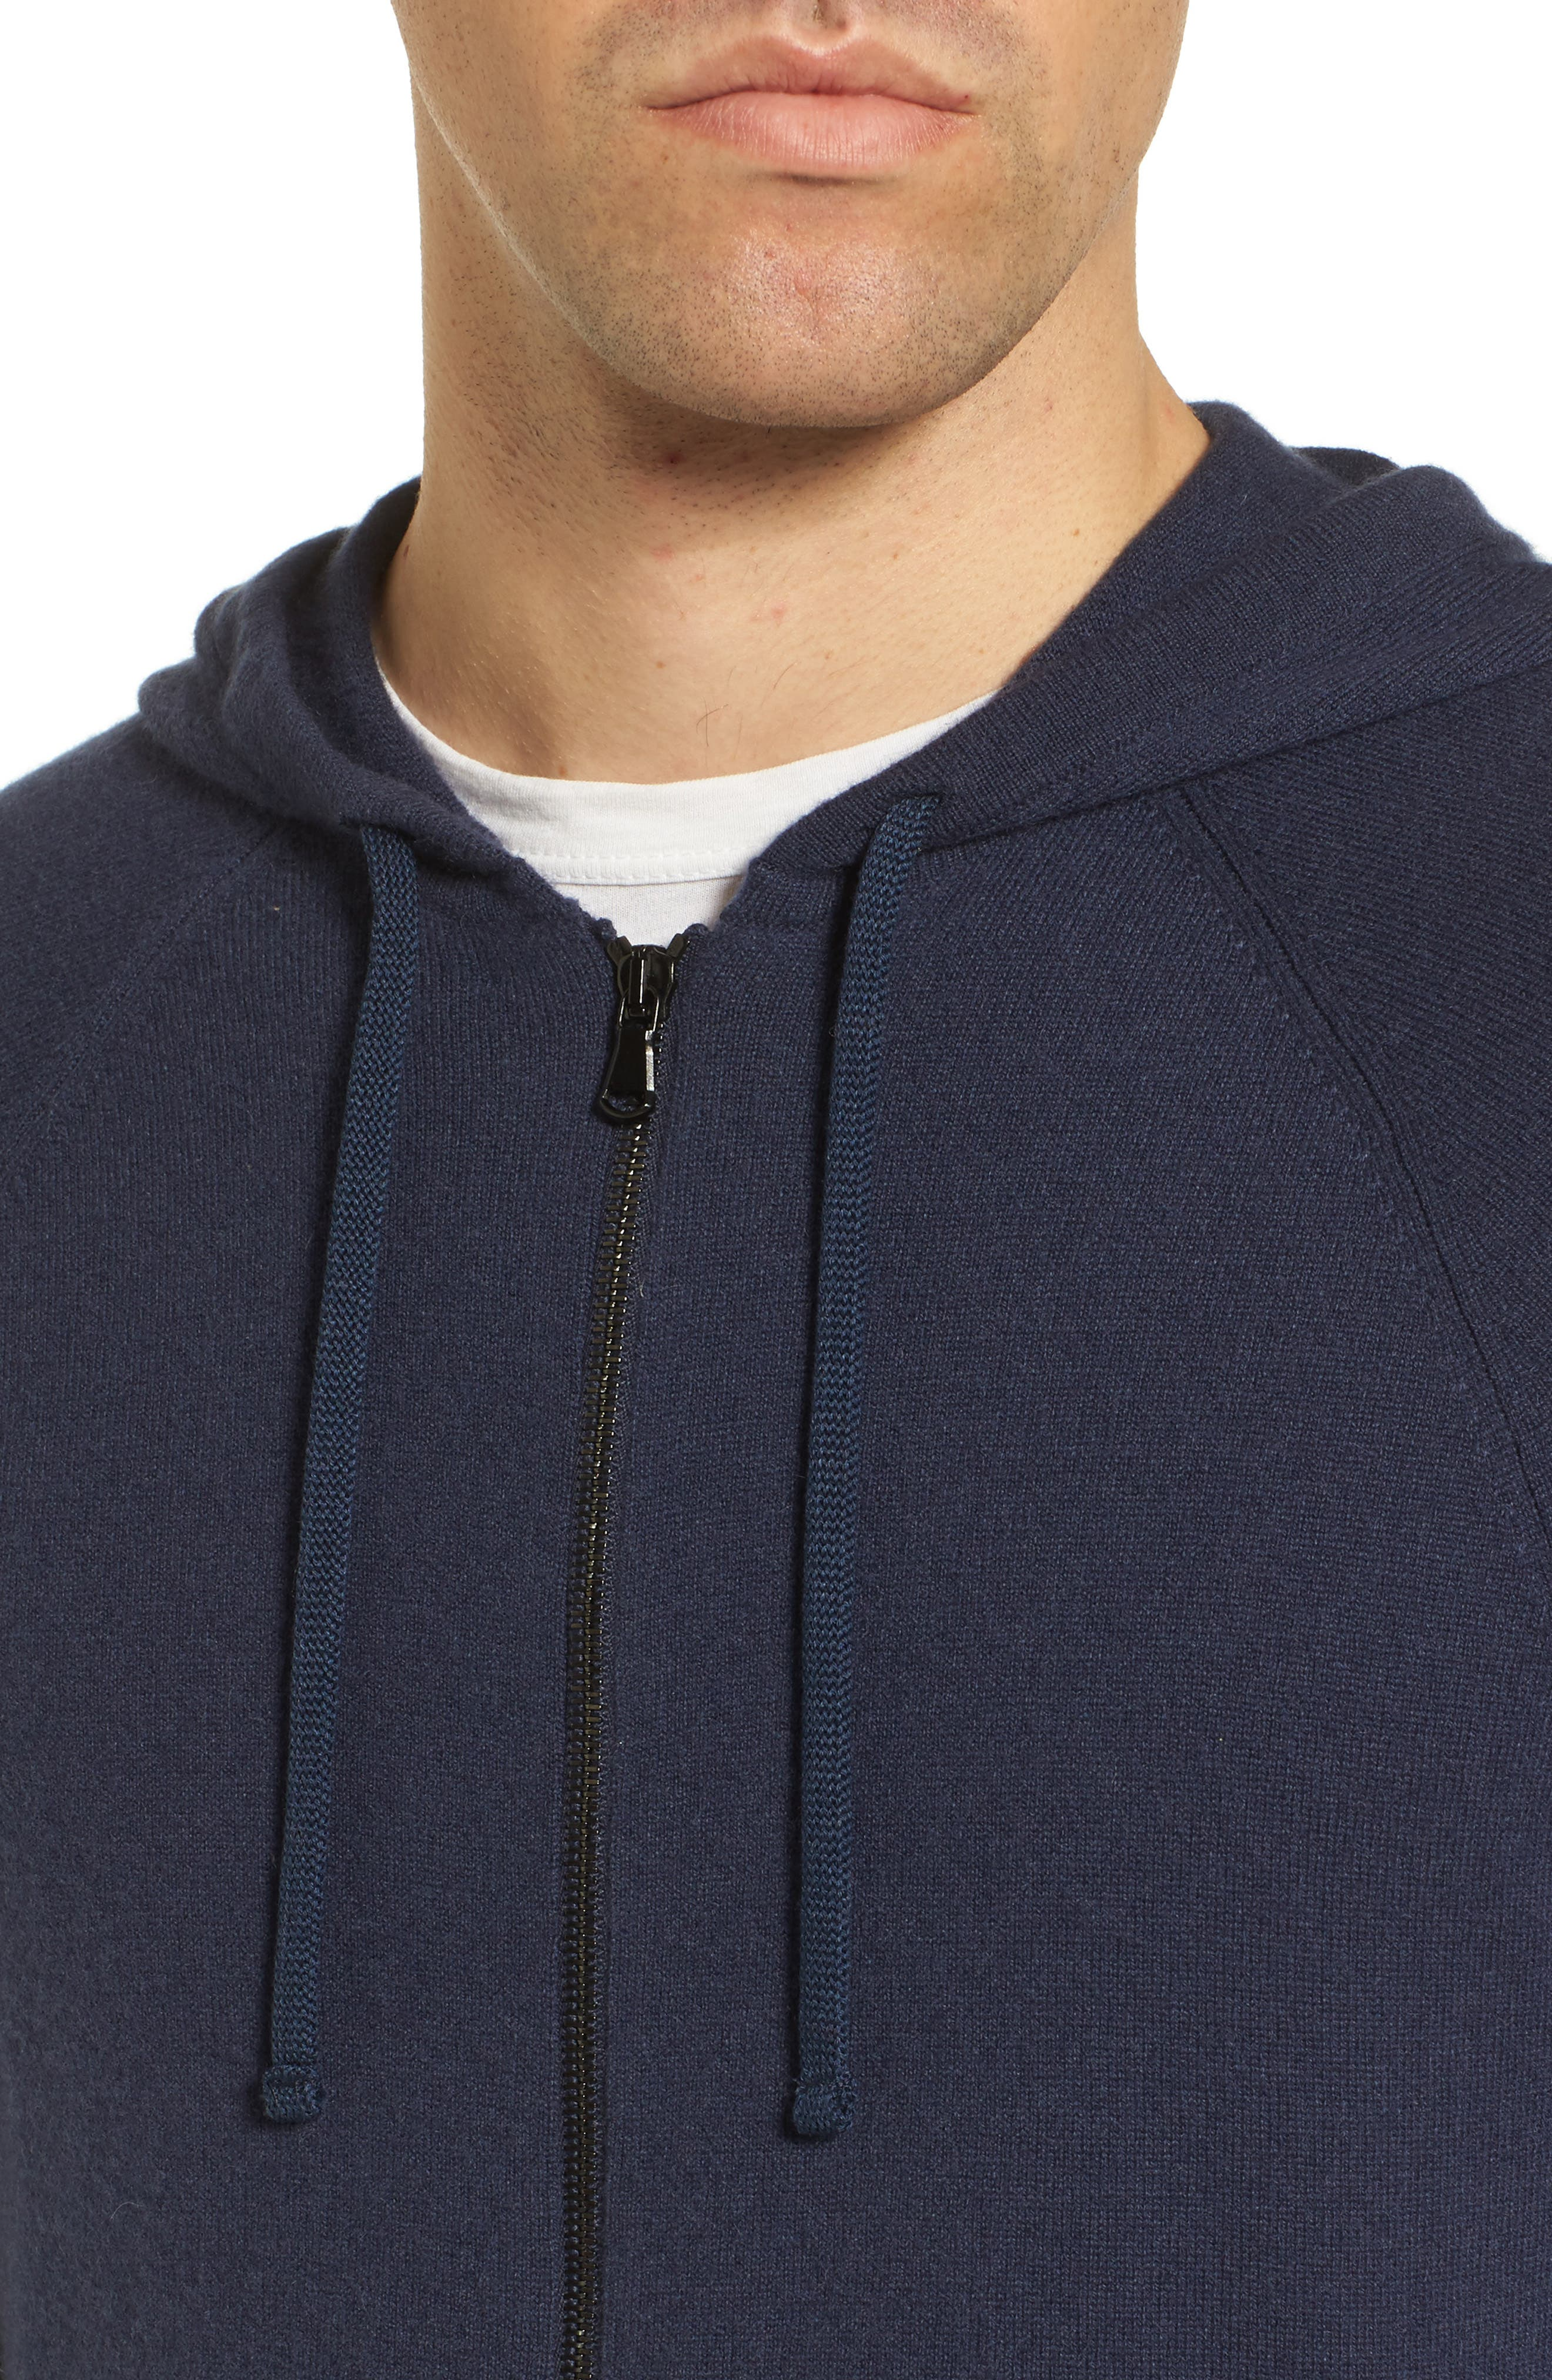 Classic Fit Cashmere Hooded Track Jacket,                             Alternate thumbnail 8, color,